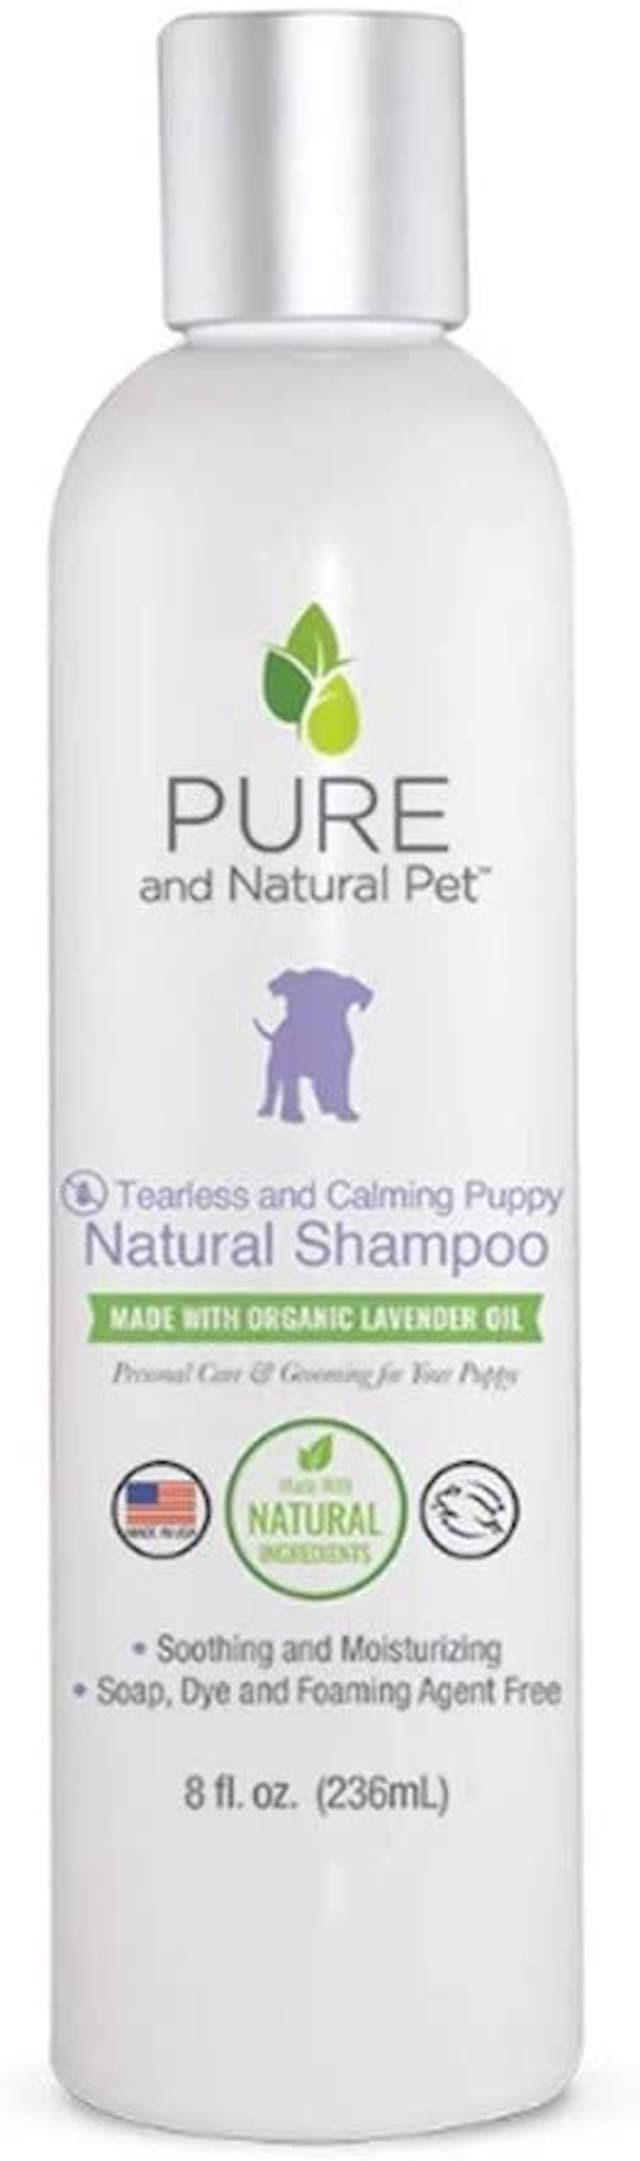 Pure and Natural Pet Tearless and Calming Puppy Shampoo